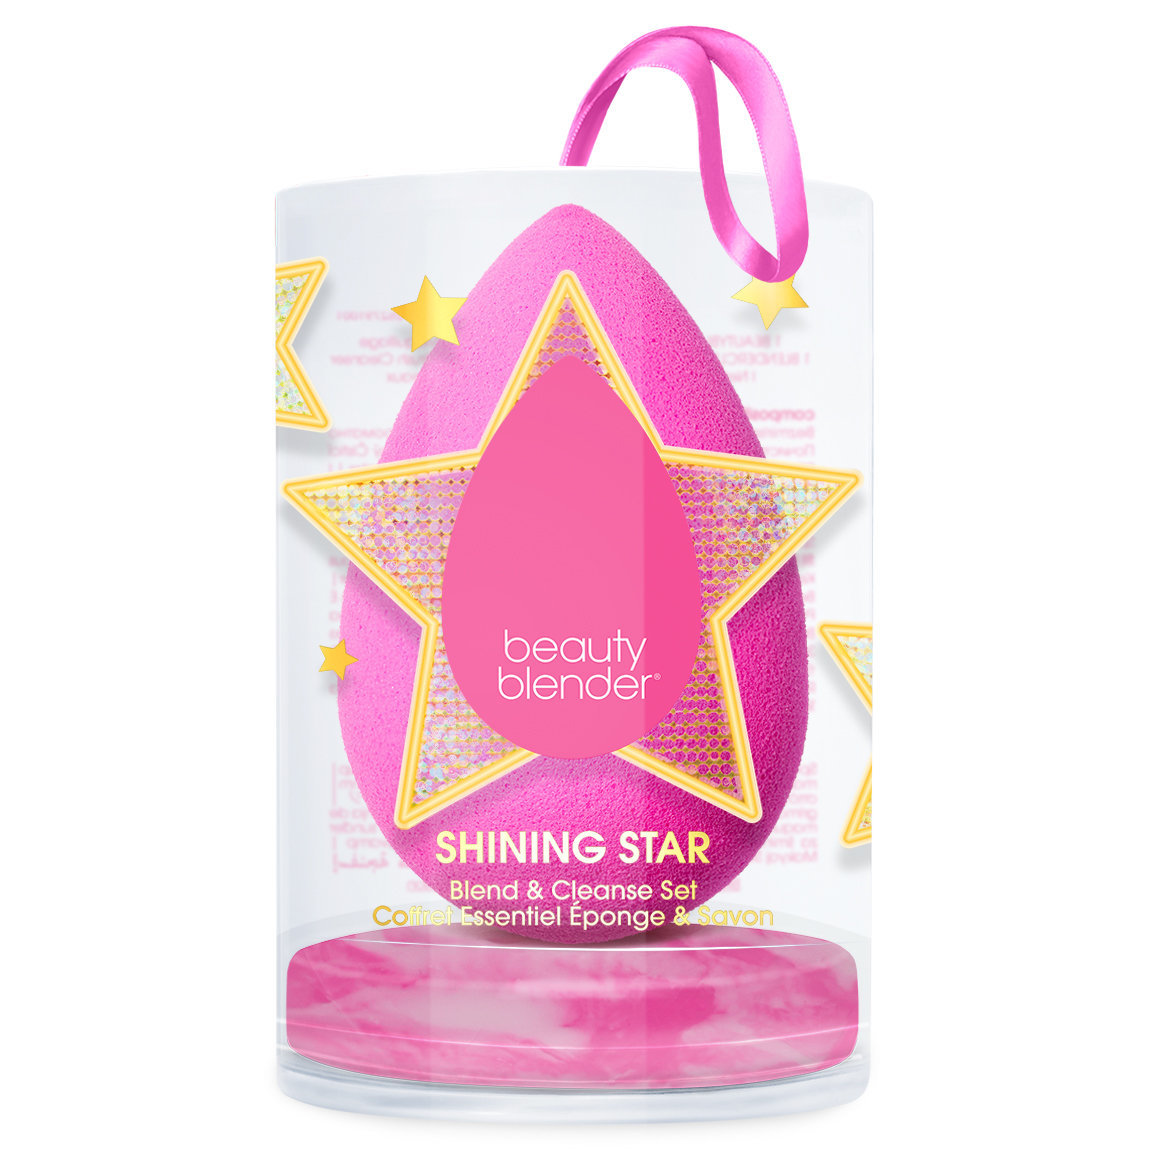 beautyblender SHINING STAR Blend & Cleanse Set alternative view 1 - product swatch.